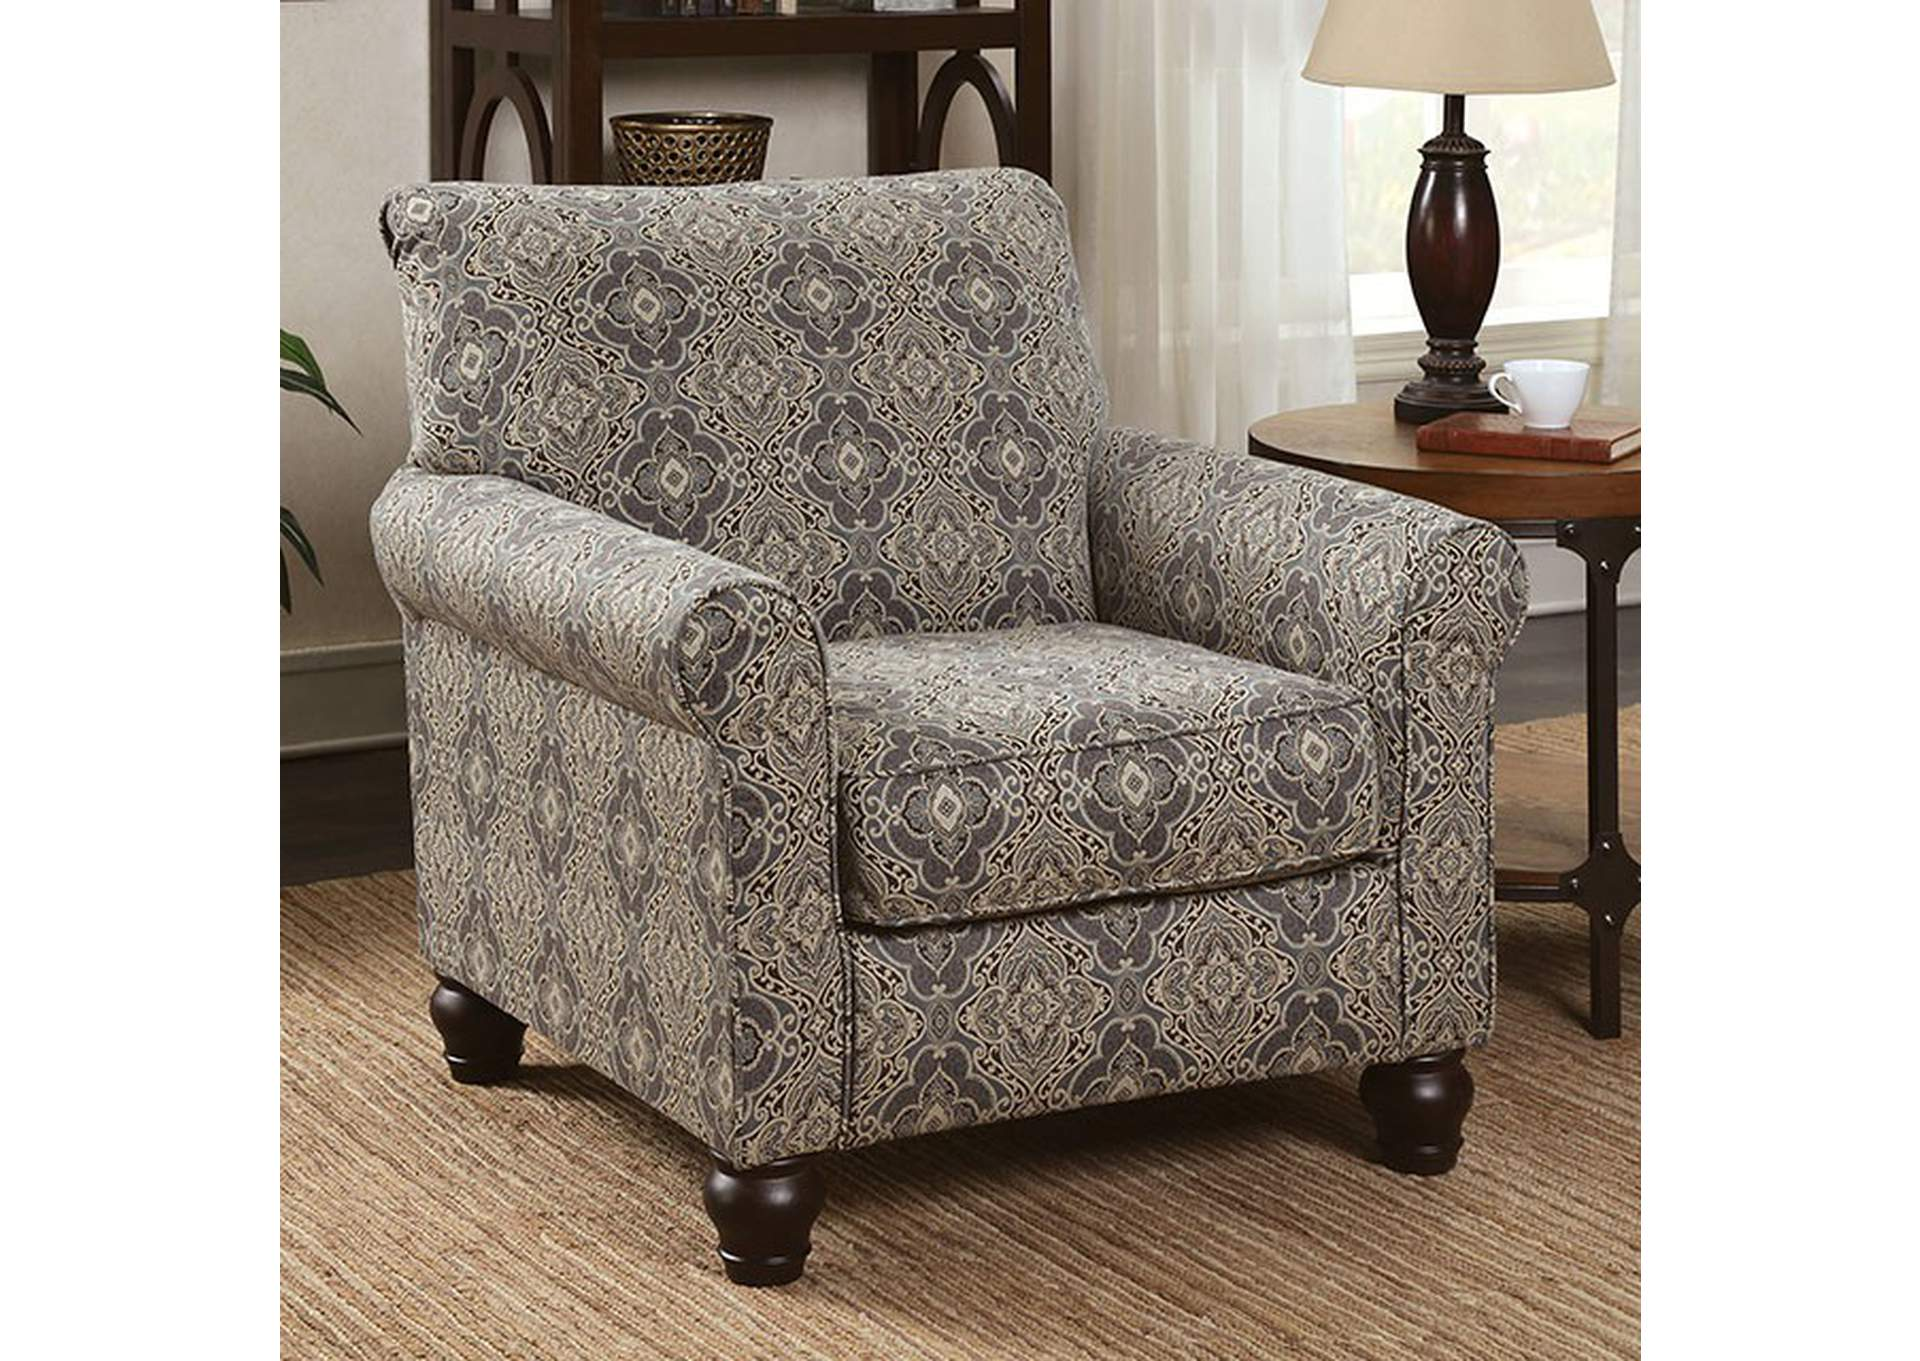 Clea Damask Pattern Accent Chair,Furniture Of America